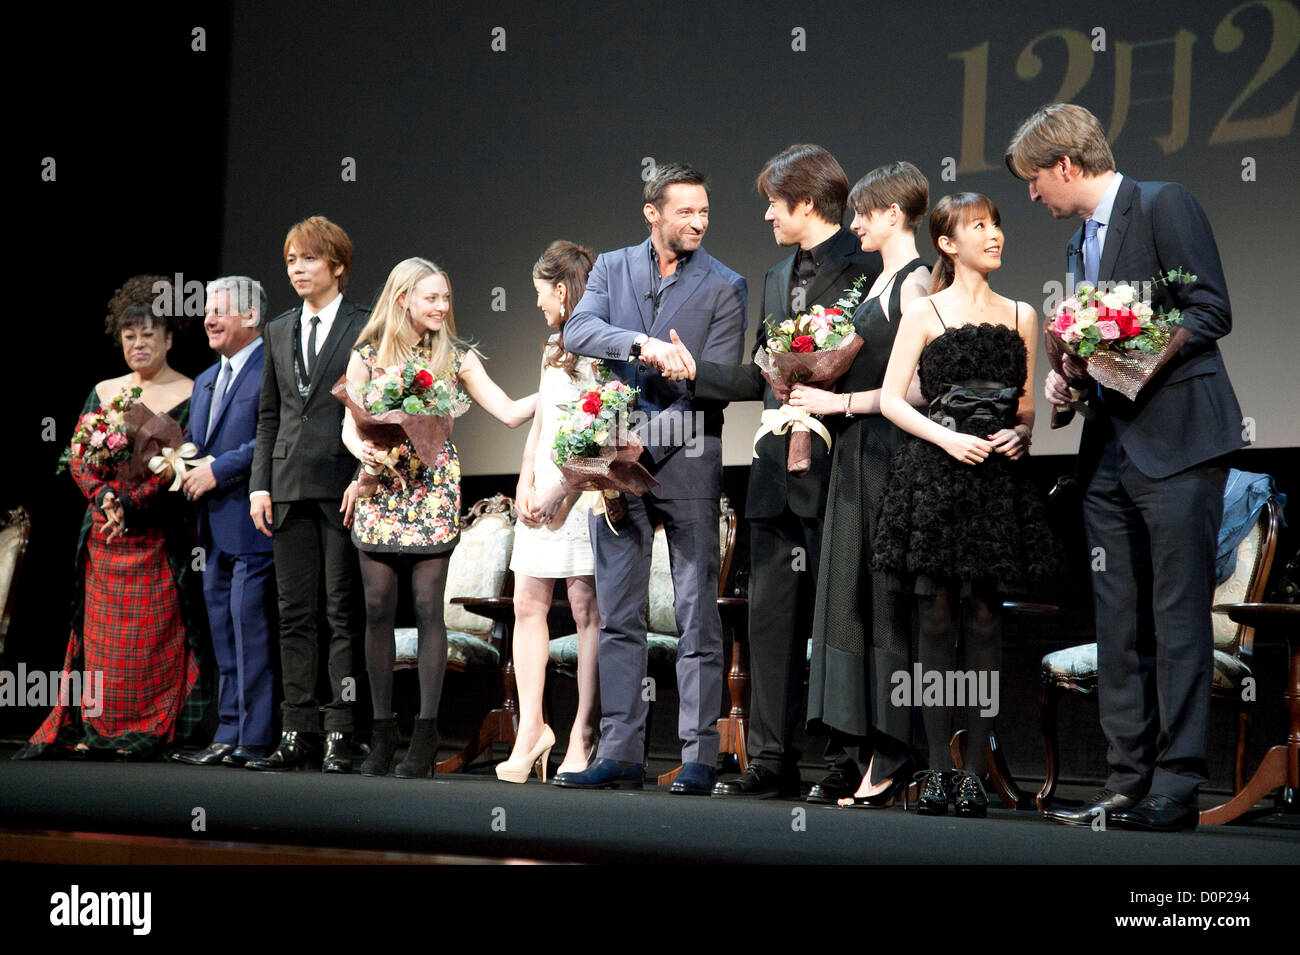 ... Hugh Jackman, Anne Hathaway and Tom Hooper, Nov 28, 2012 : Tokyo, Japan  - The Japanese musical cast and the movie casts of Les Miserables on stage.